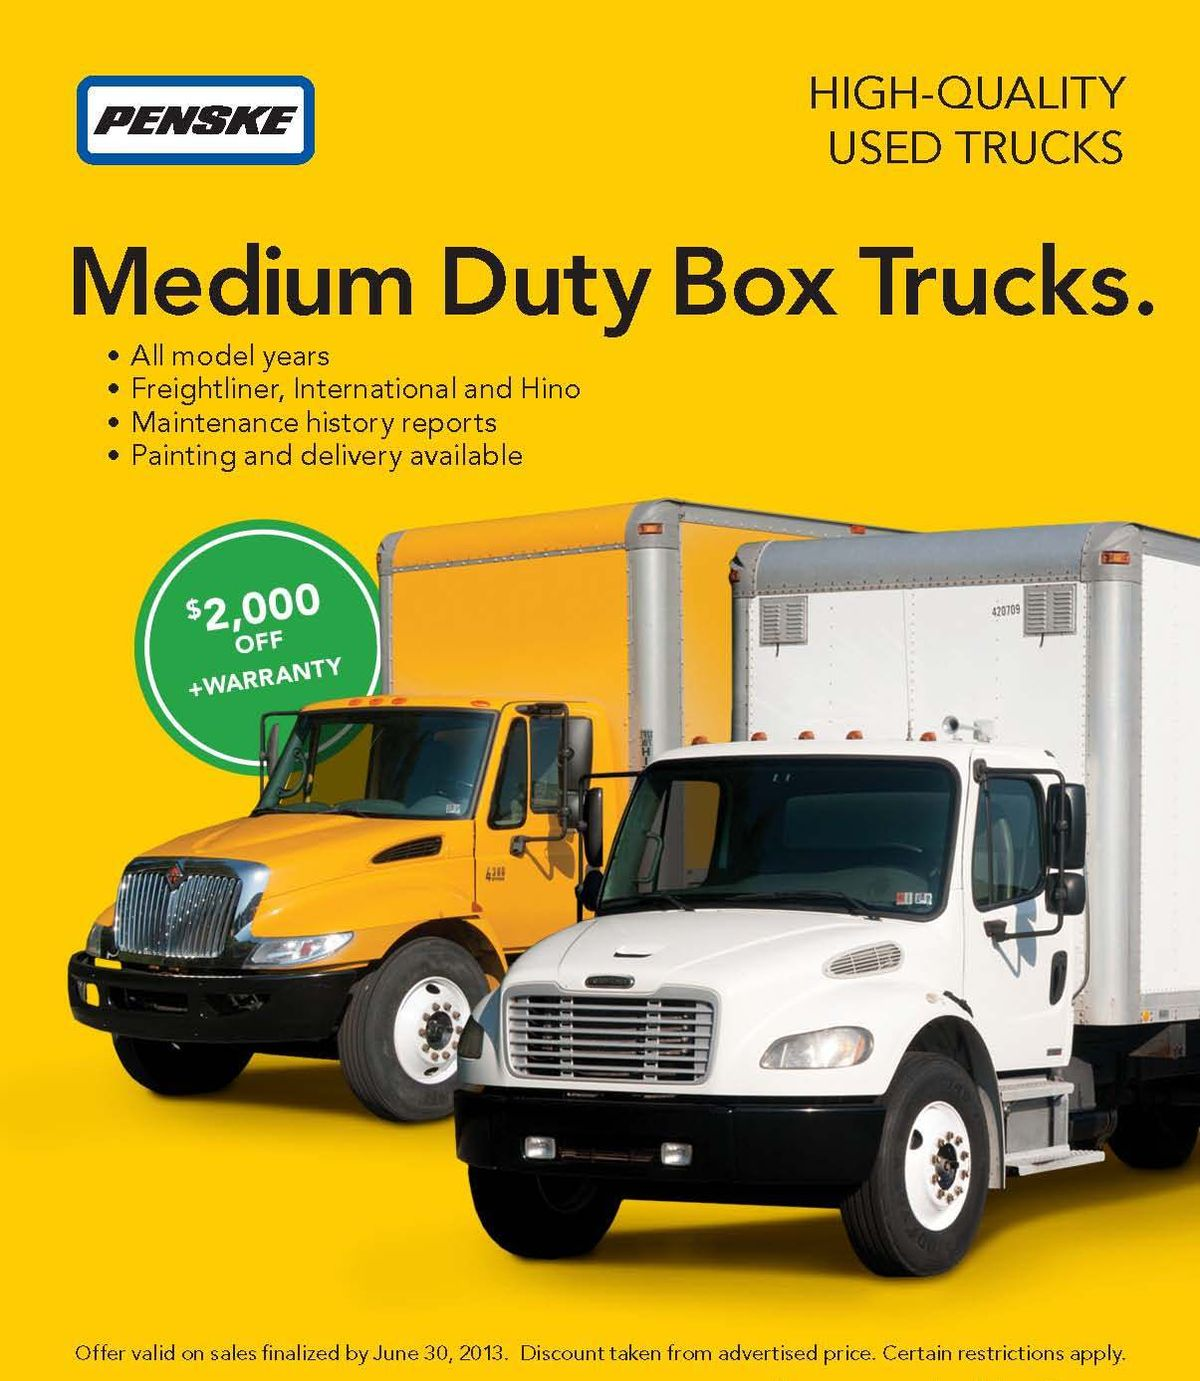 Penske Offering $2,000 Discount on Medium-Duty Box Truck Purchases